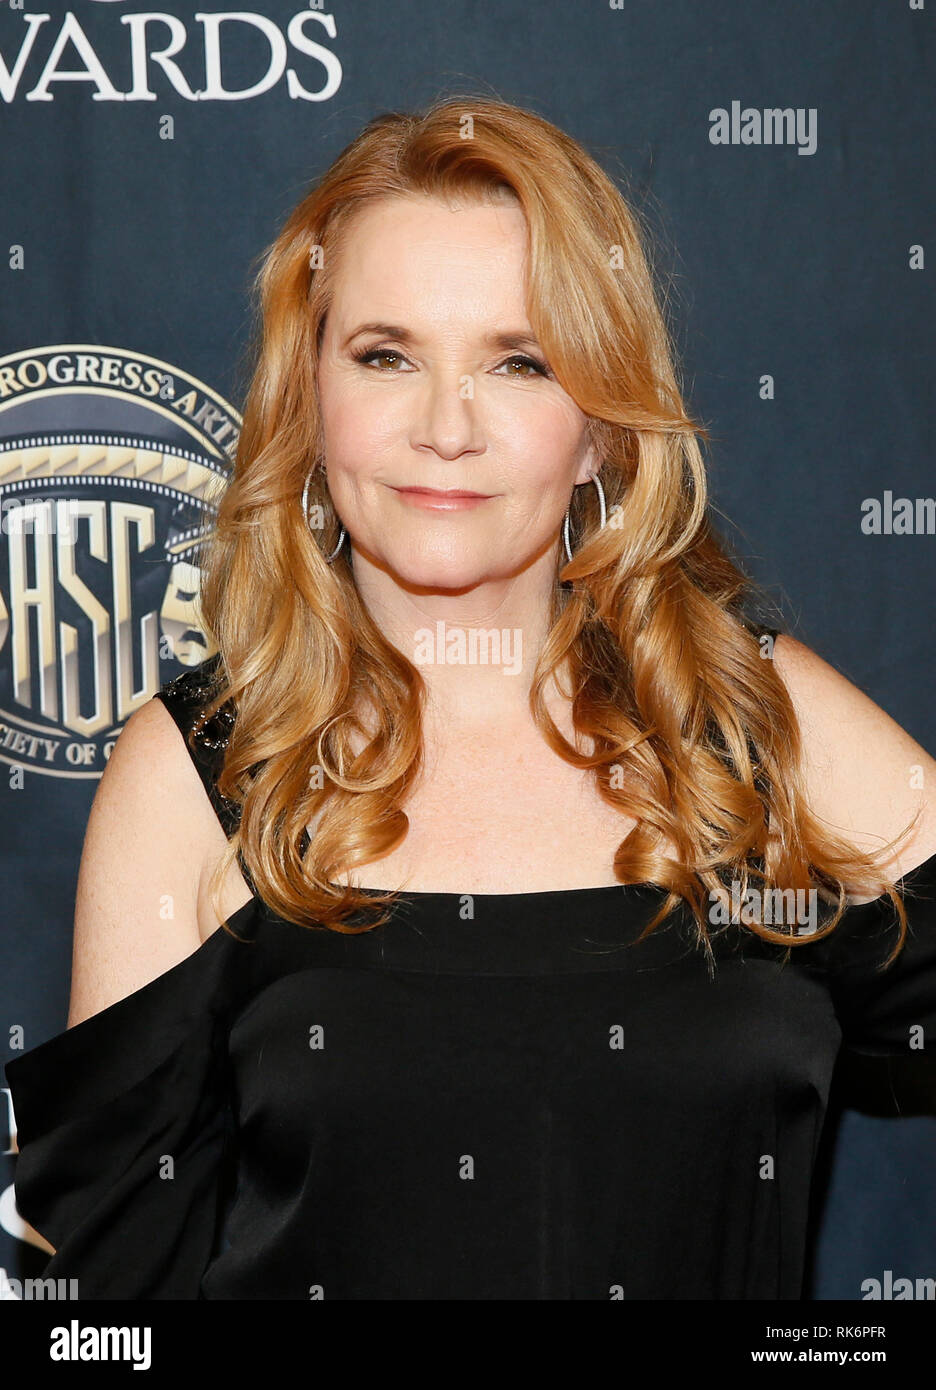 California, USA. 10th Feb 2019. California, USA. 10th Feb 2019. Actress Lea Thompson poses at the 33rd annual ASC Awards and The American Society of Cinematographers 100th Anniversary Celebration at the Ray Dolby Ballroom at Hollywood & Highland, Saturday, February 9, 2019 in Hollywood, California. Photo by Danny Moloshok/Moloshok Photography, Inc./imageSPACE/MediaPunch Credit: MediaPunch Inc/Alamy Live News Credit: MediaPunch Inc/Alamy Live News Stock Photo